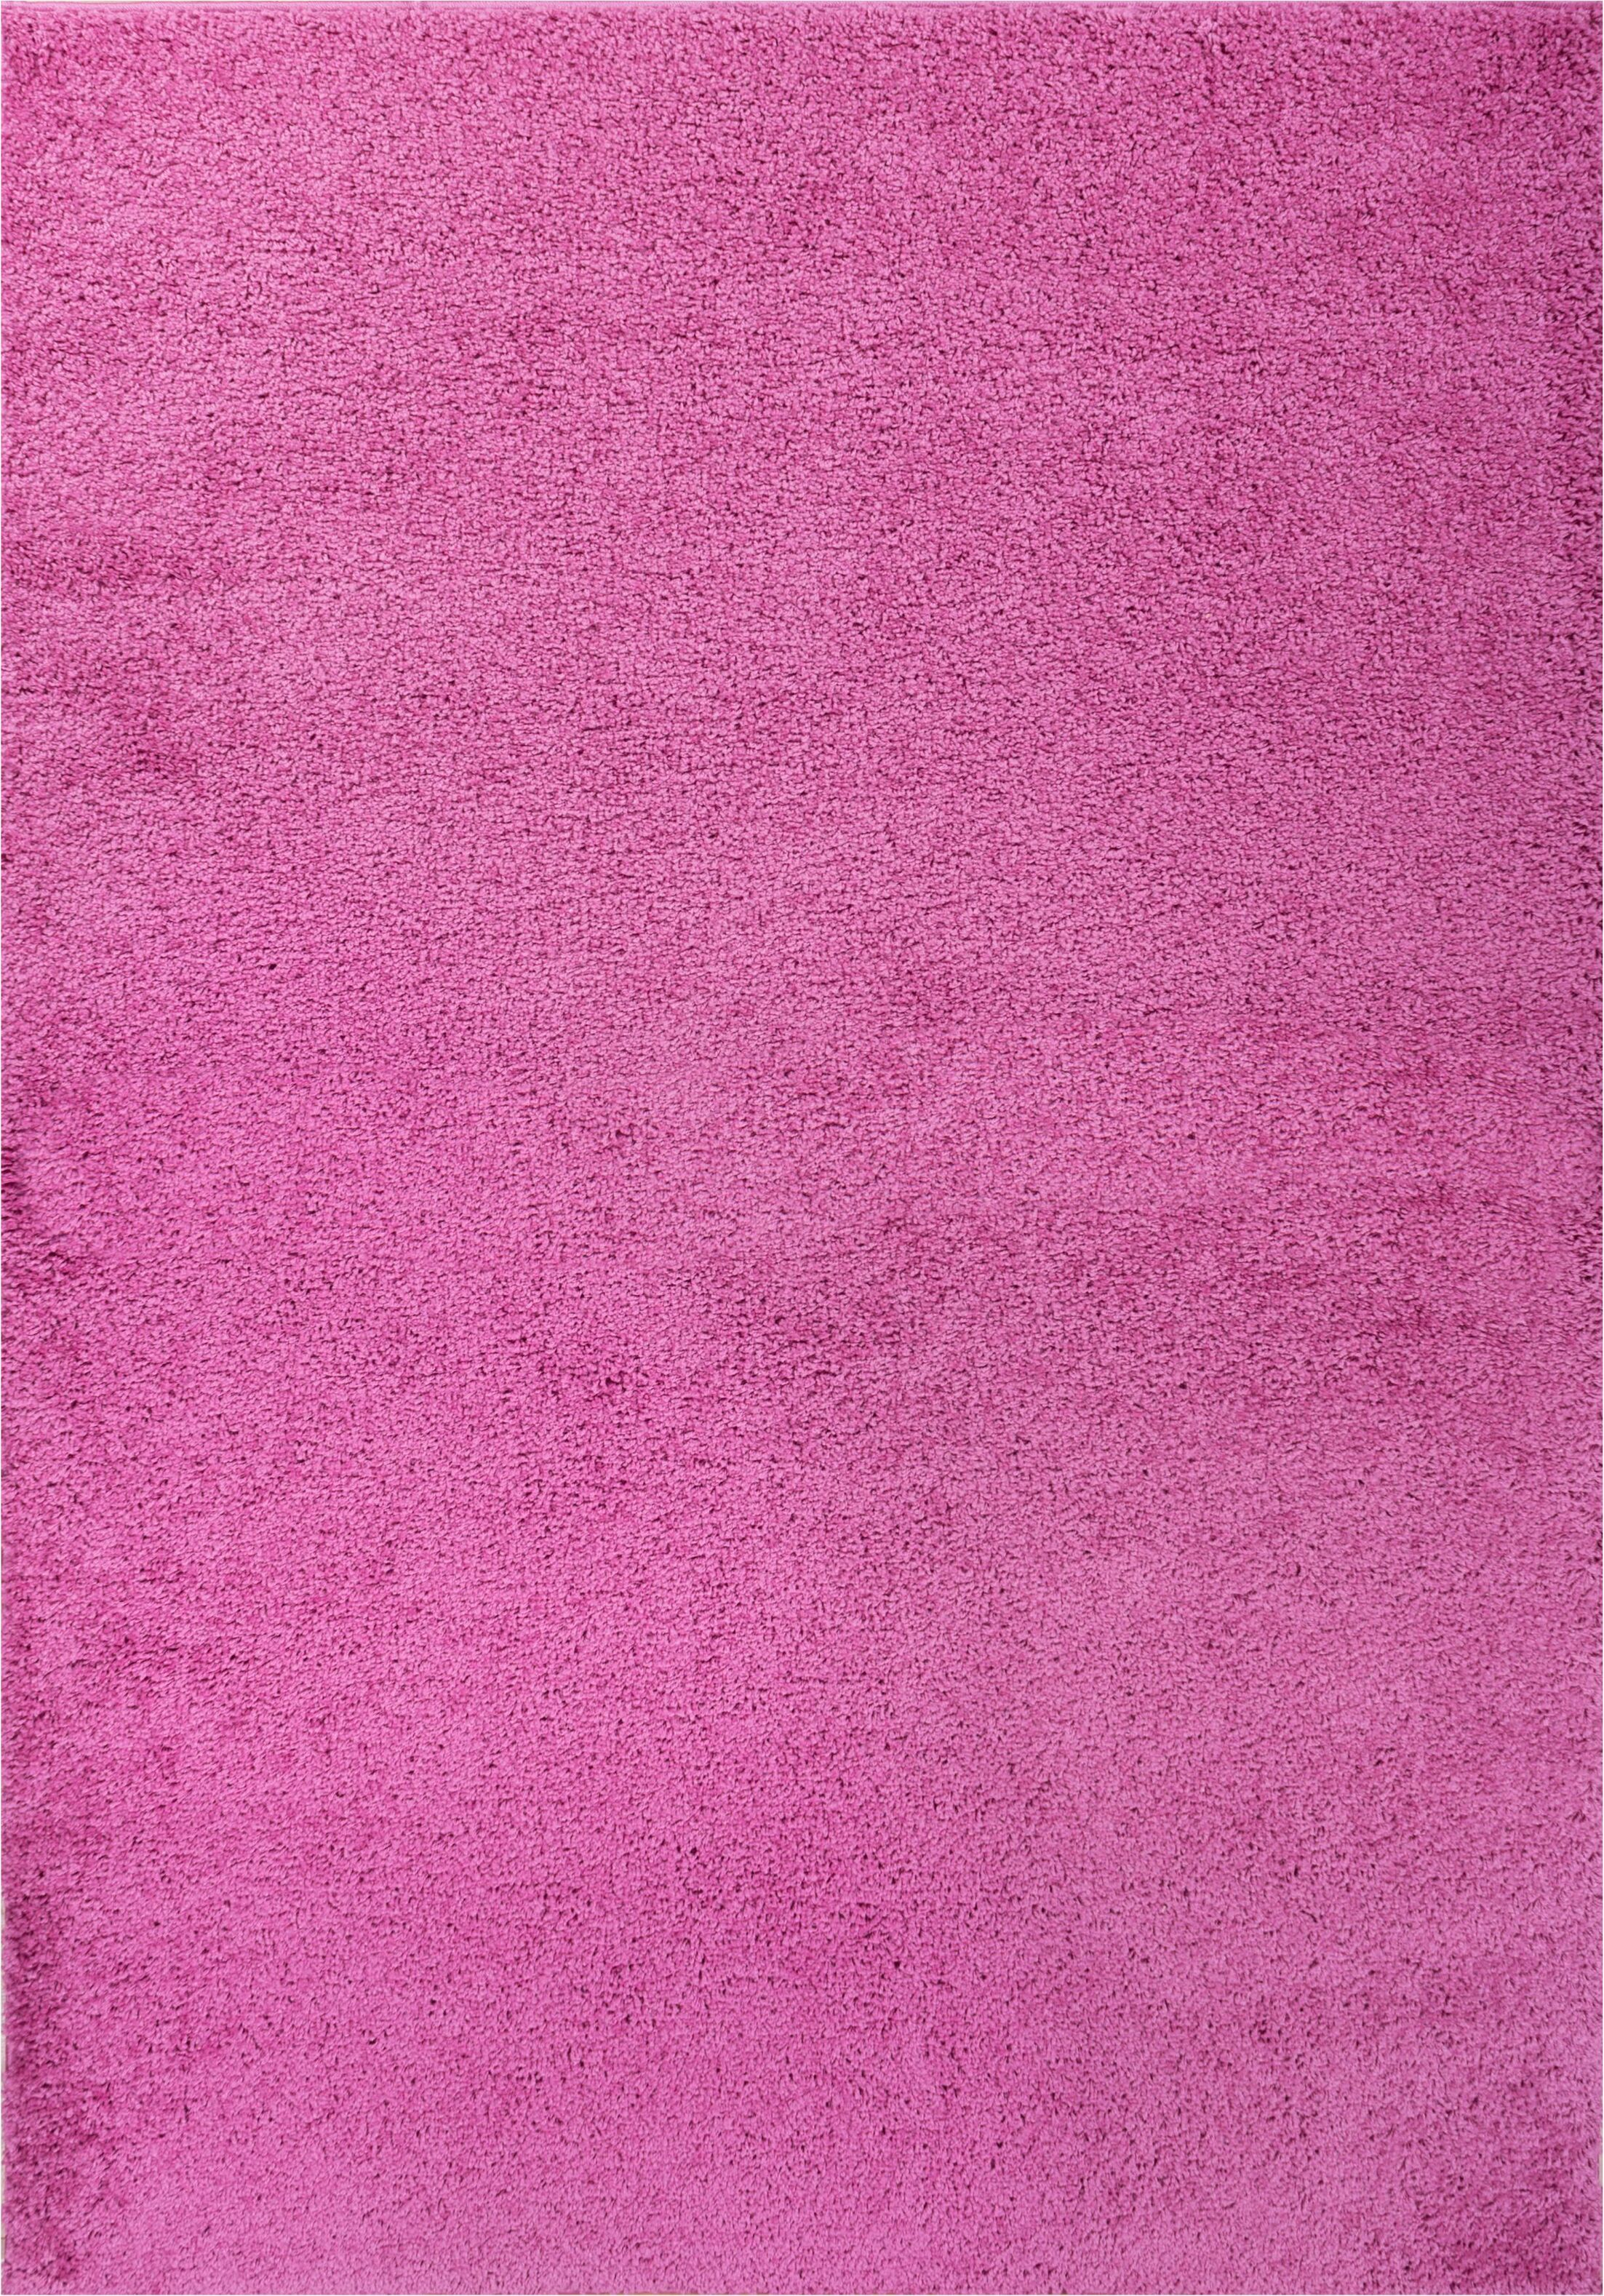 Dondre Fuchsia Indoor Area Rug Rug Size: Rectangle 6'7'' x 9'10''